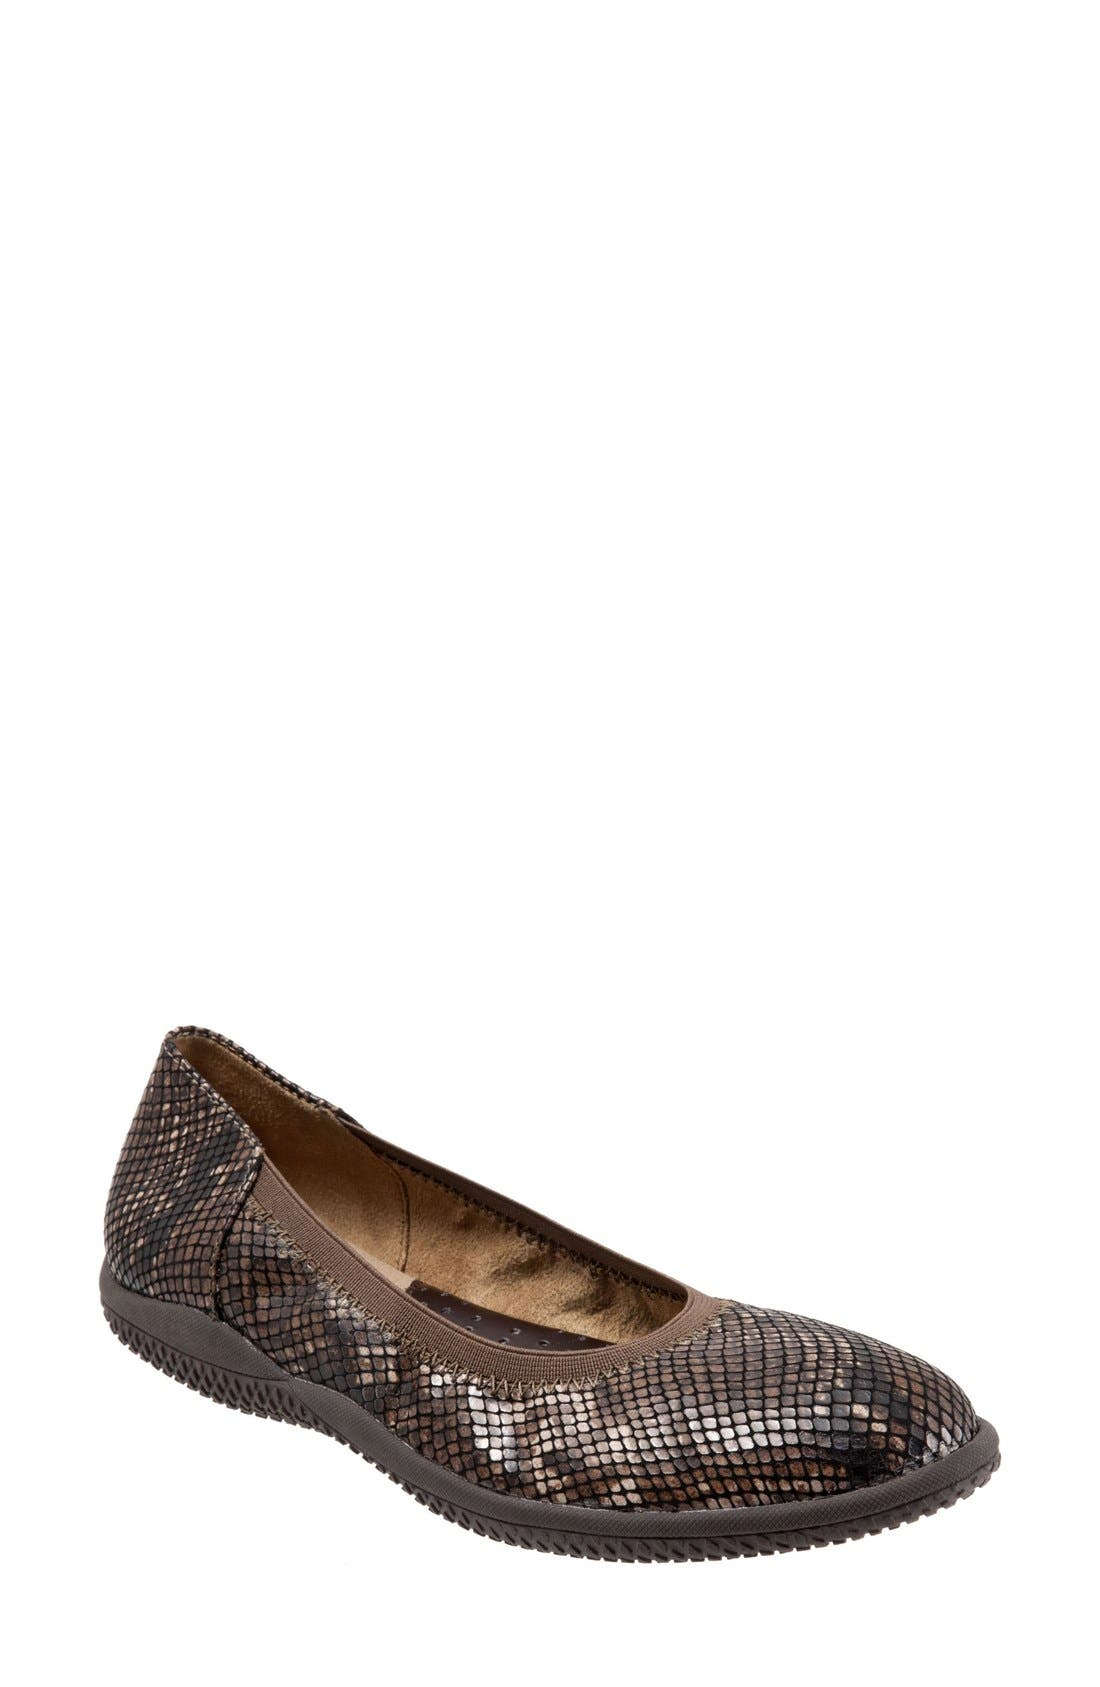 'Hampshire' Dot Perforated Ballet Flat,                         Main,                         color, BROWN PYTHON PRINT LEATHER